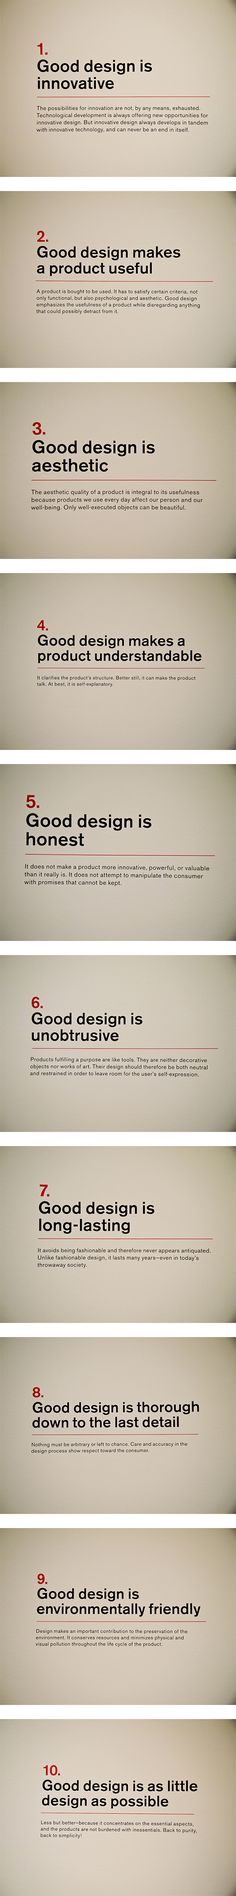 Dieter Rams Ten principles for Good Design more on http://html5themes.org